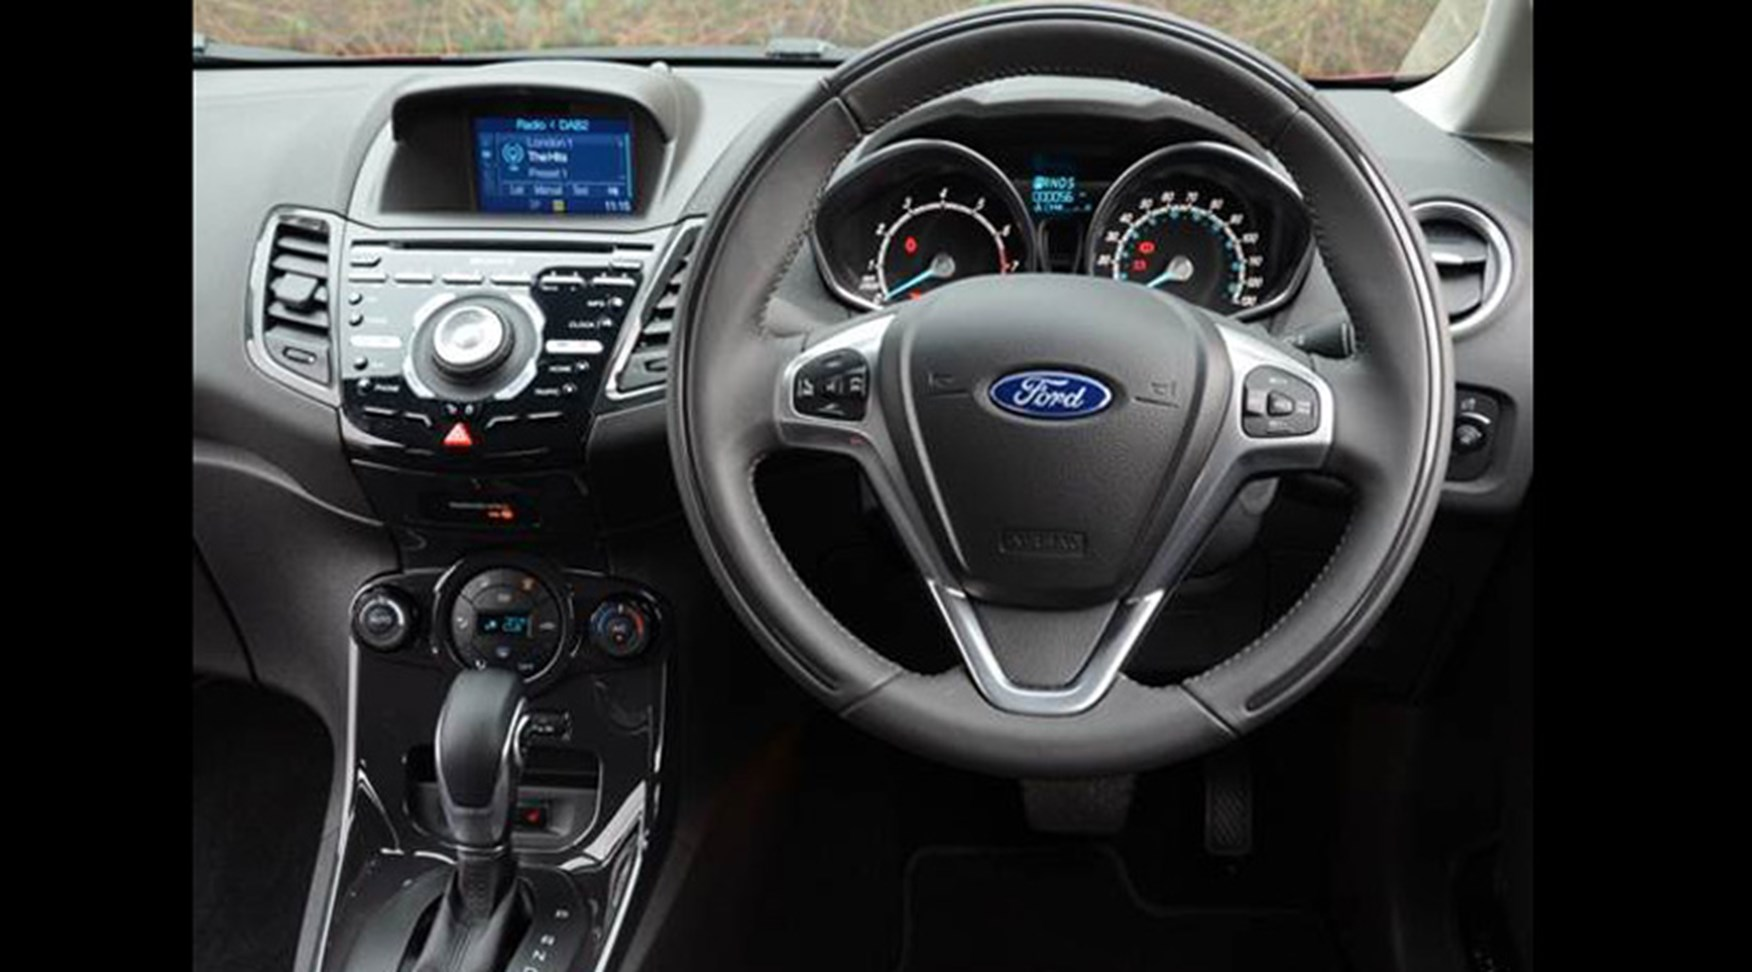 Ford Fiesta 1 0 Powershift Automatic 2014 Review By Car